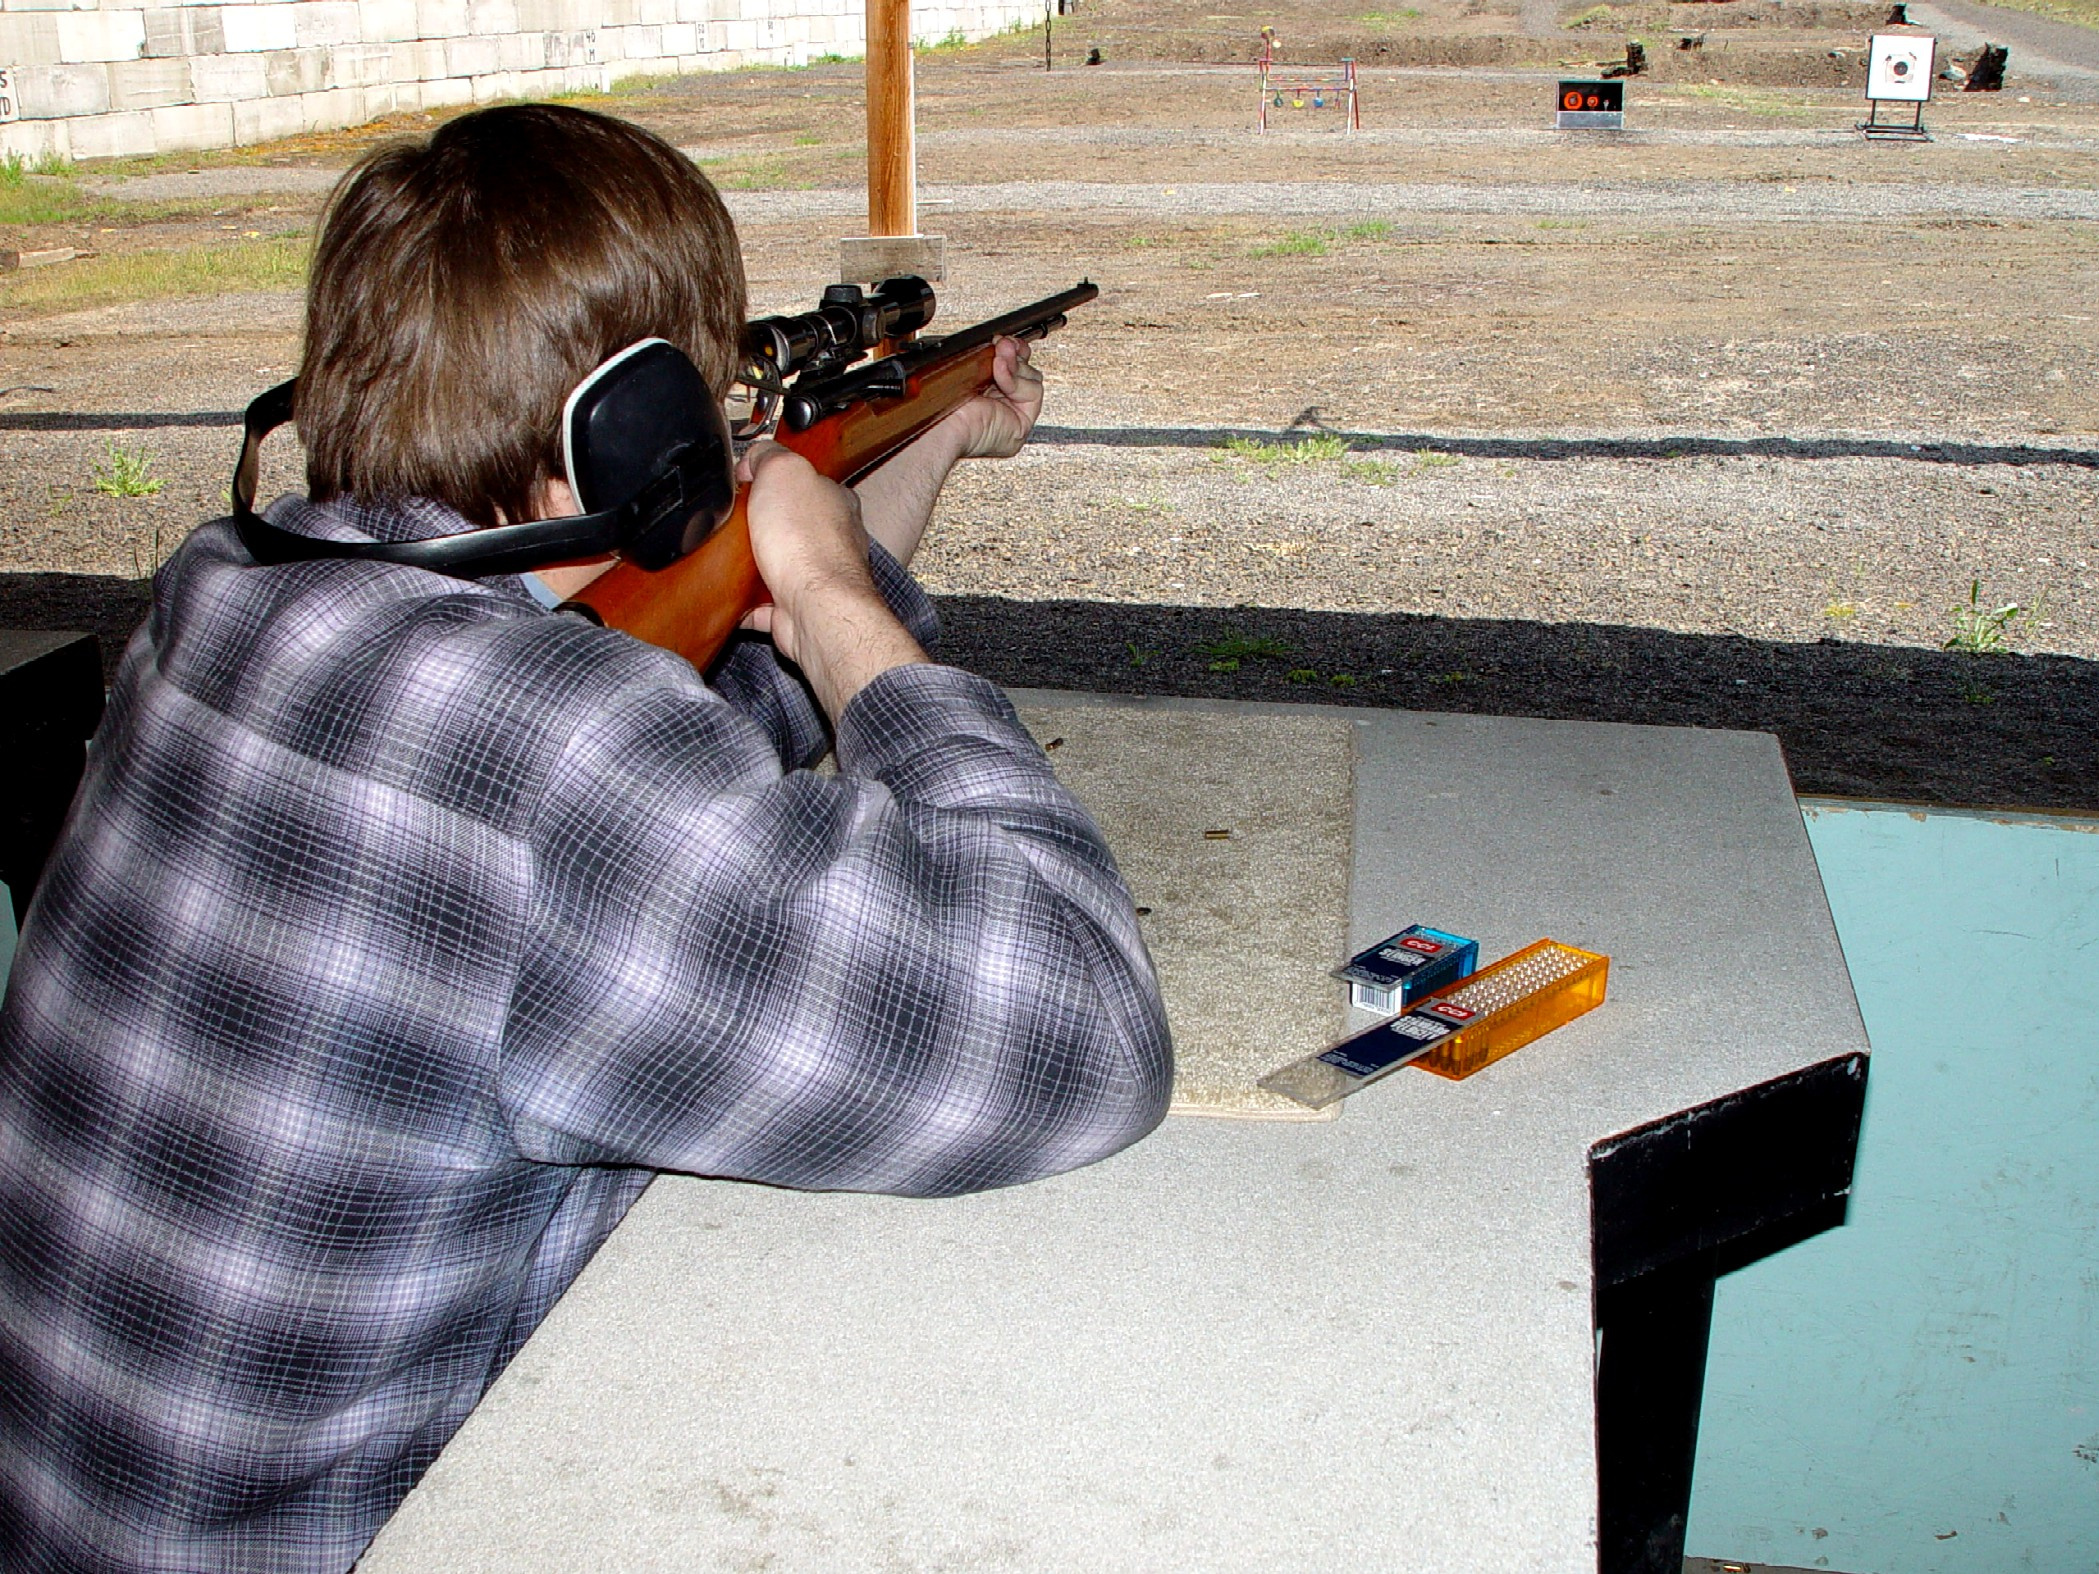 rifle shooting range